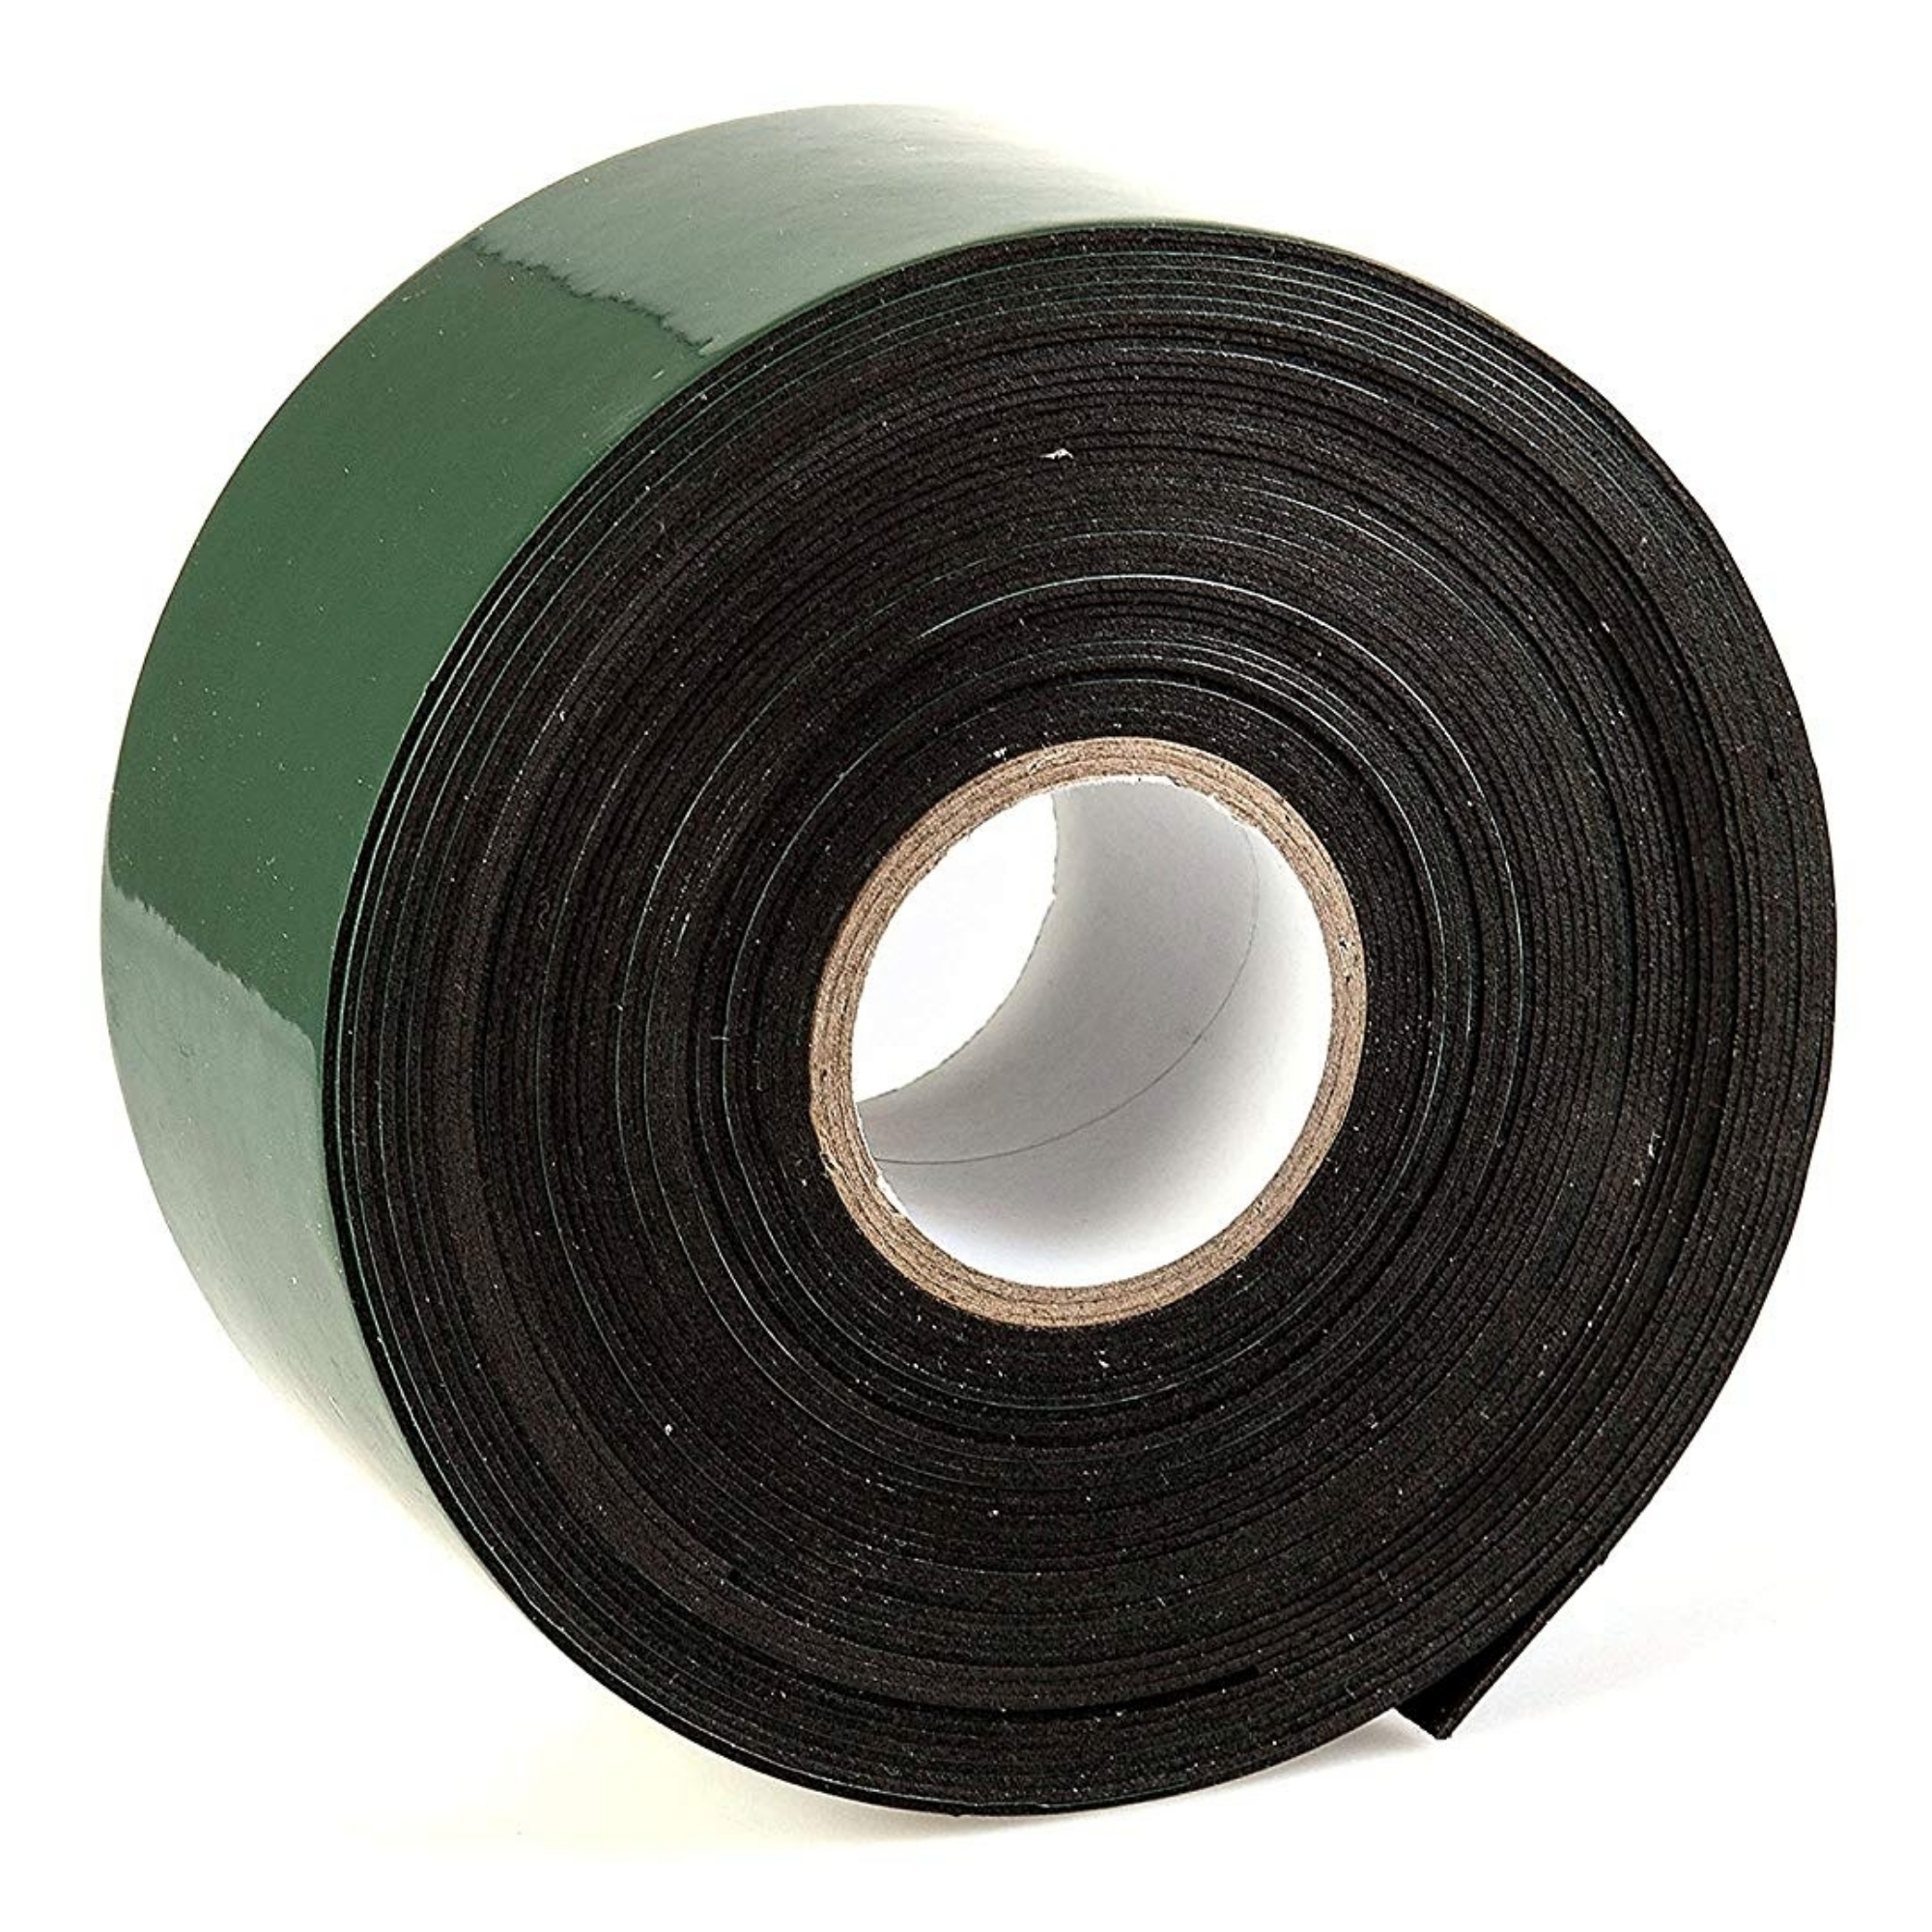 Number Plate Fitting Double Sided Adhesive Tape 12mm x 10M